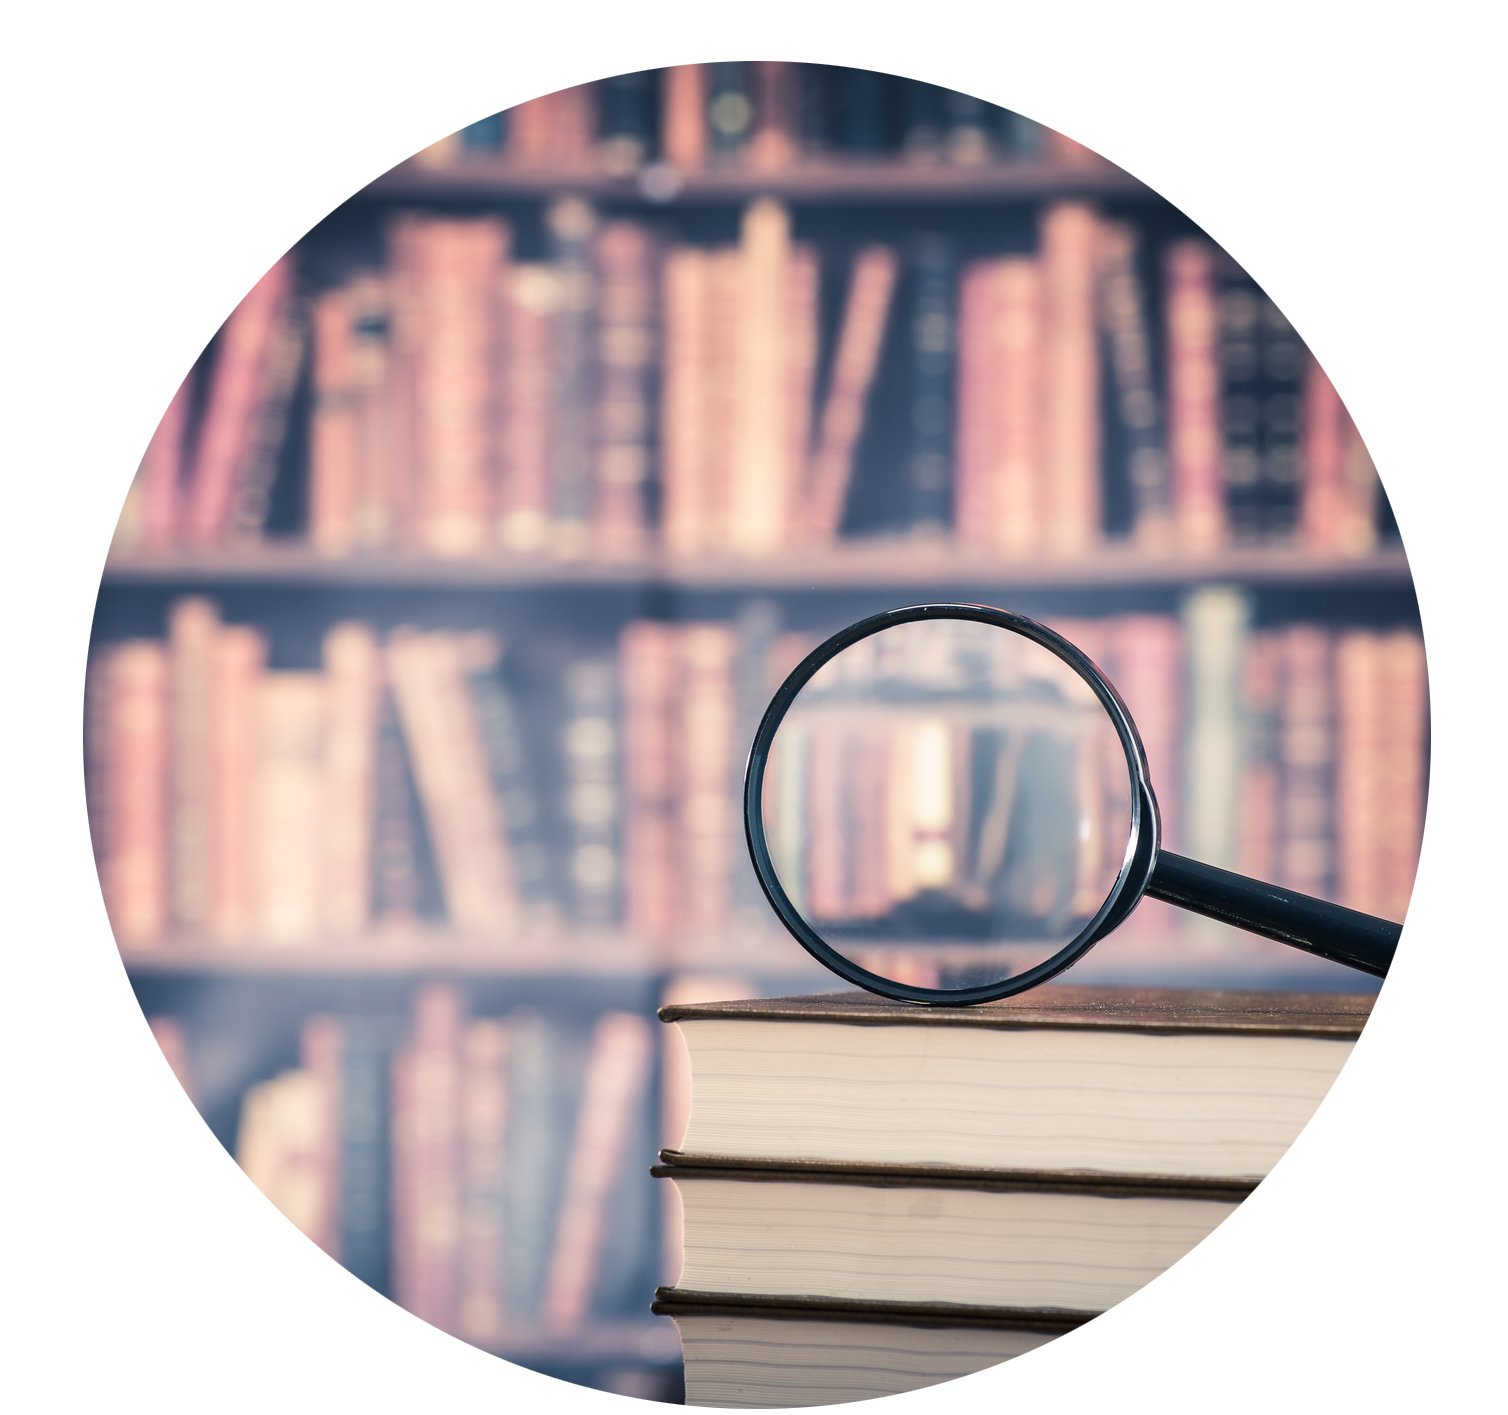 Magnifying glass over books